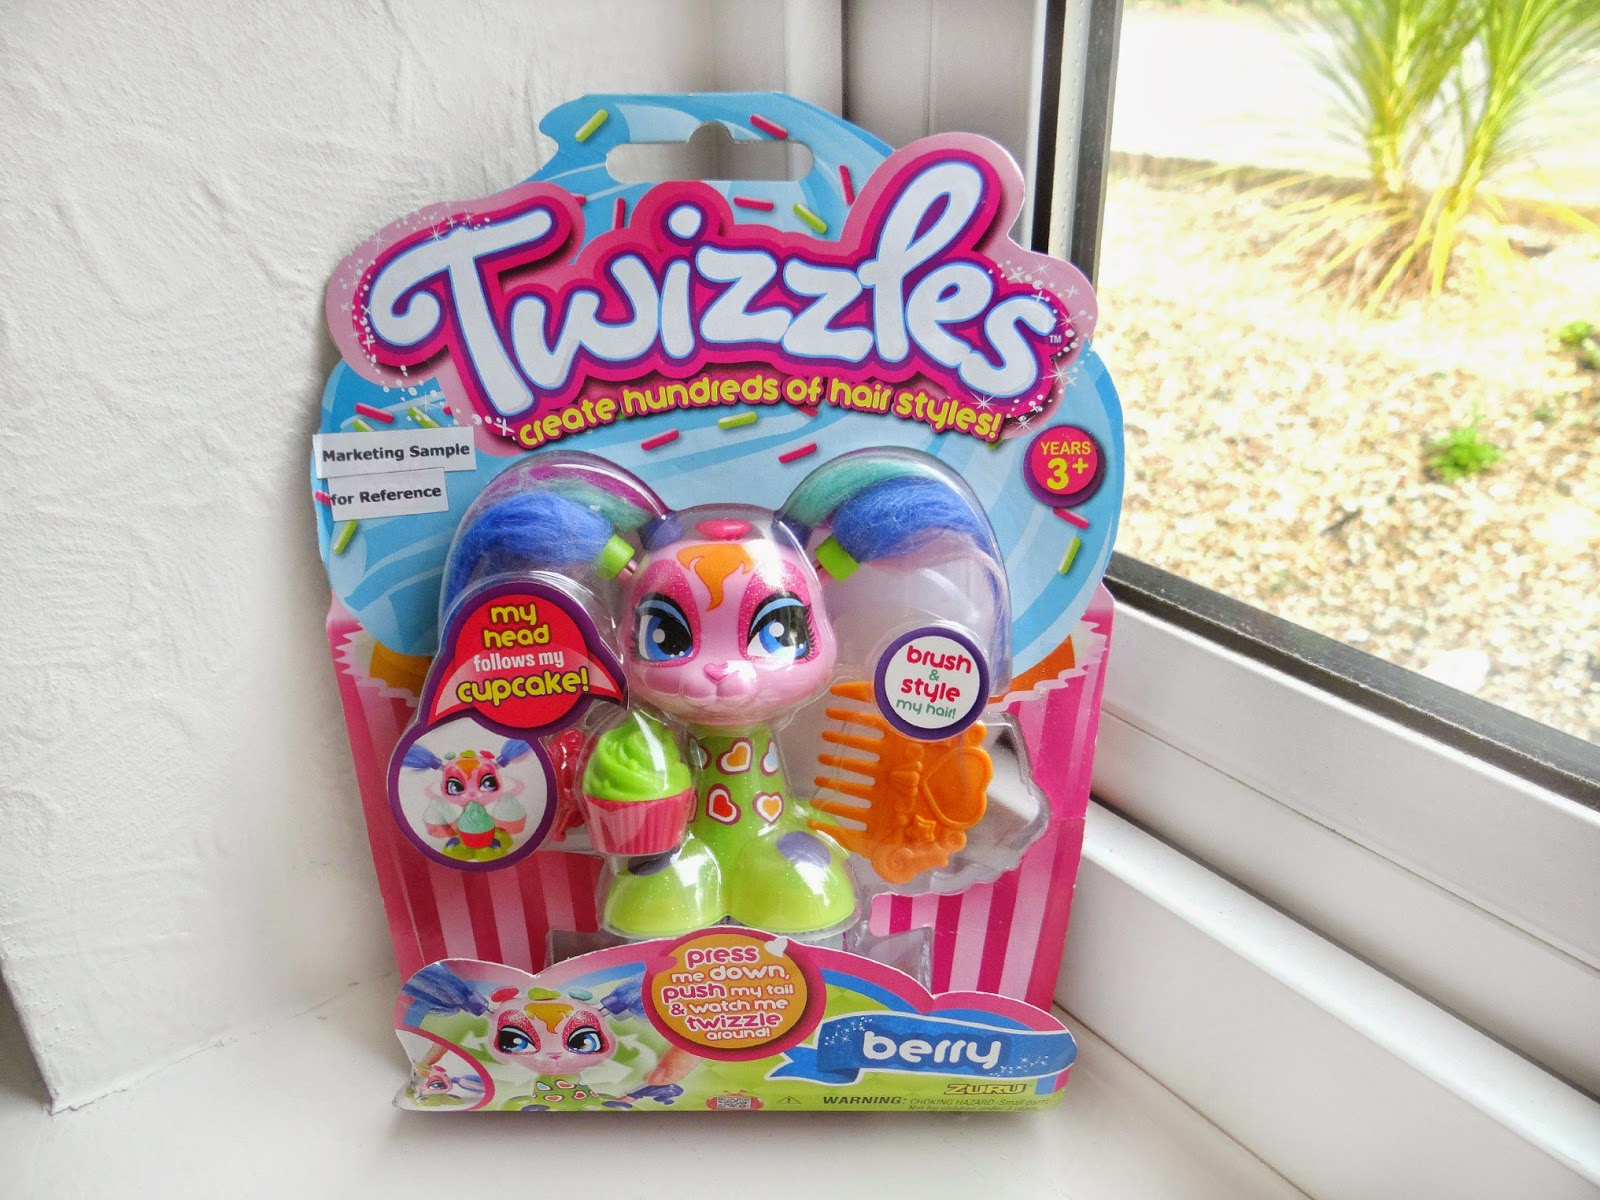 Twizzles, Fashion pet toy, collectible toy